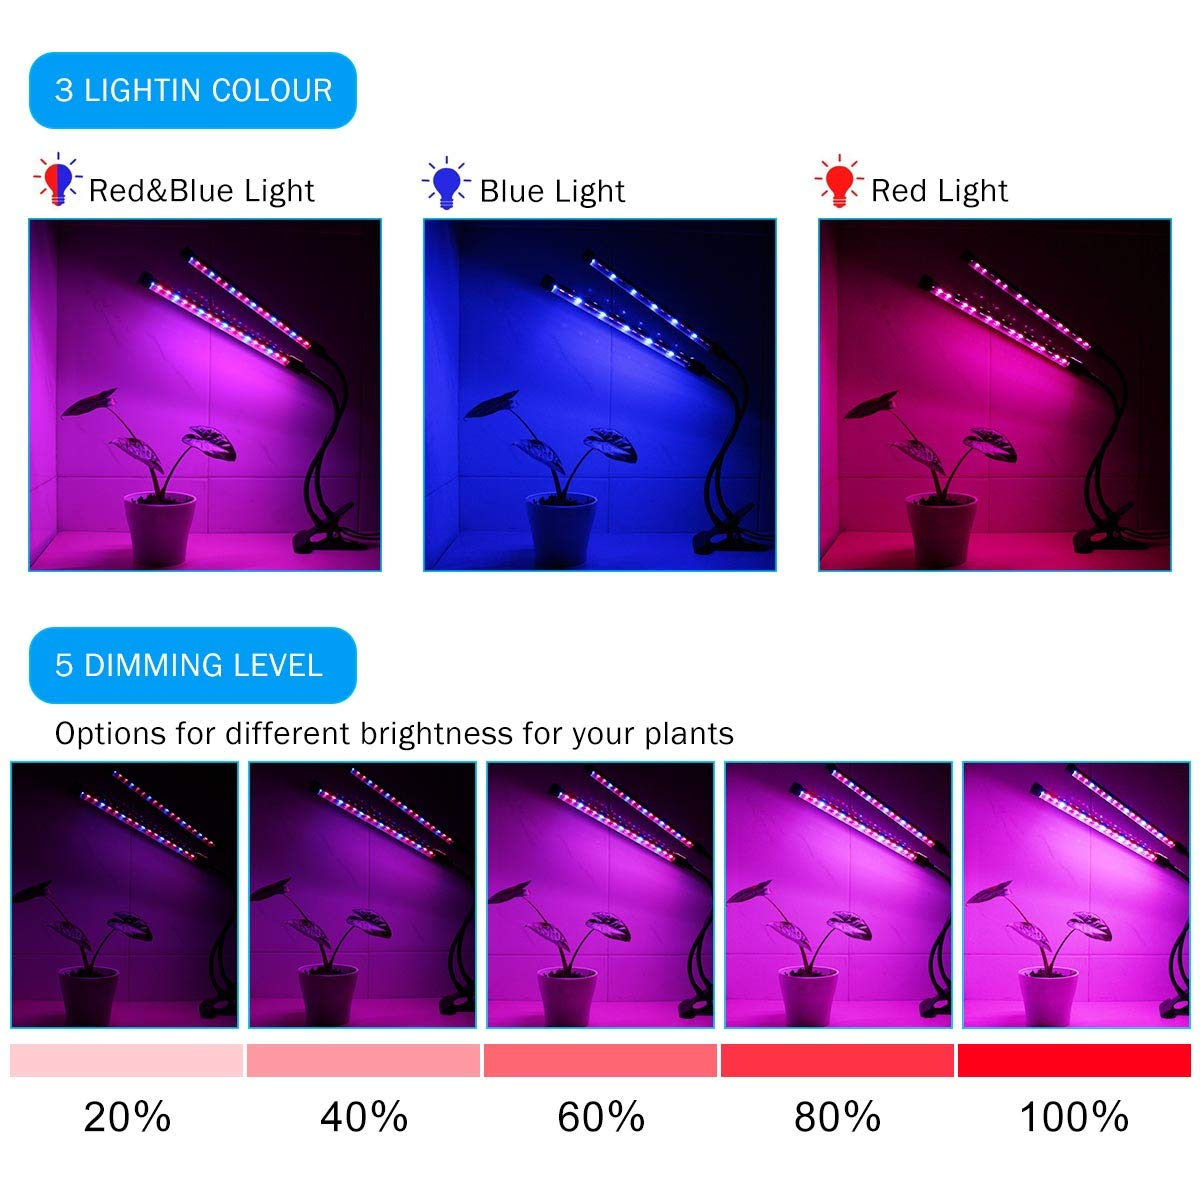 LED Grow Light, INKERSCOOP Upgraded Grow Lamp Auto ON/Off 18W 36 LED Dual Head 3-6-9-12-15 Timer 5 Dimmable Levels Plant Growing Lights 3 Light Spectrum Switching Blue/Red/RED&Blue Light